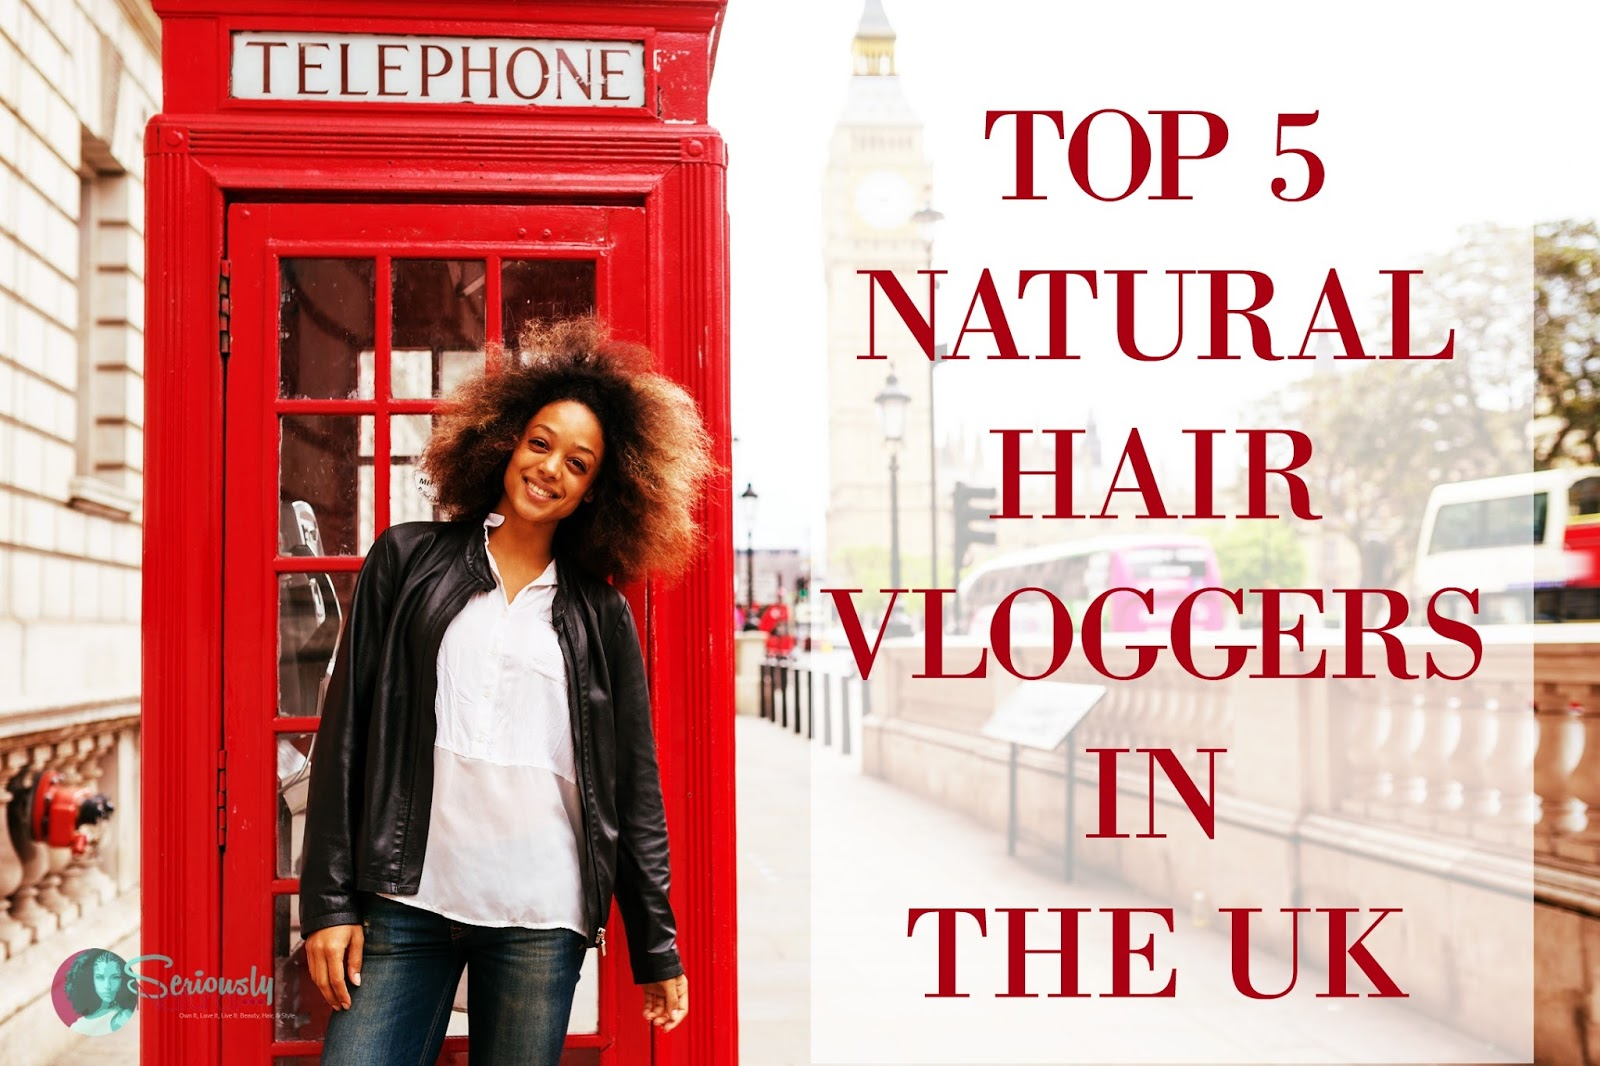 TOP 5 NATURAL HAIR VLOGGERS IN THE UK